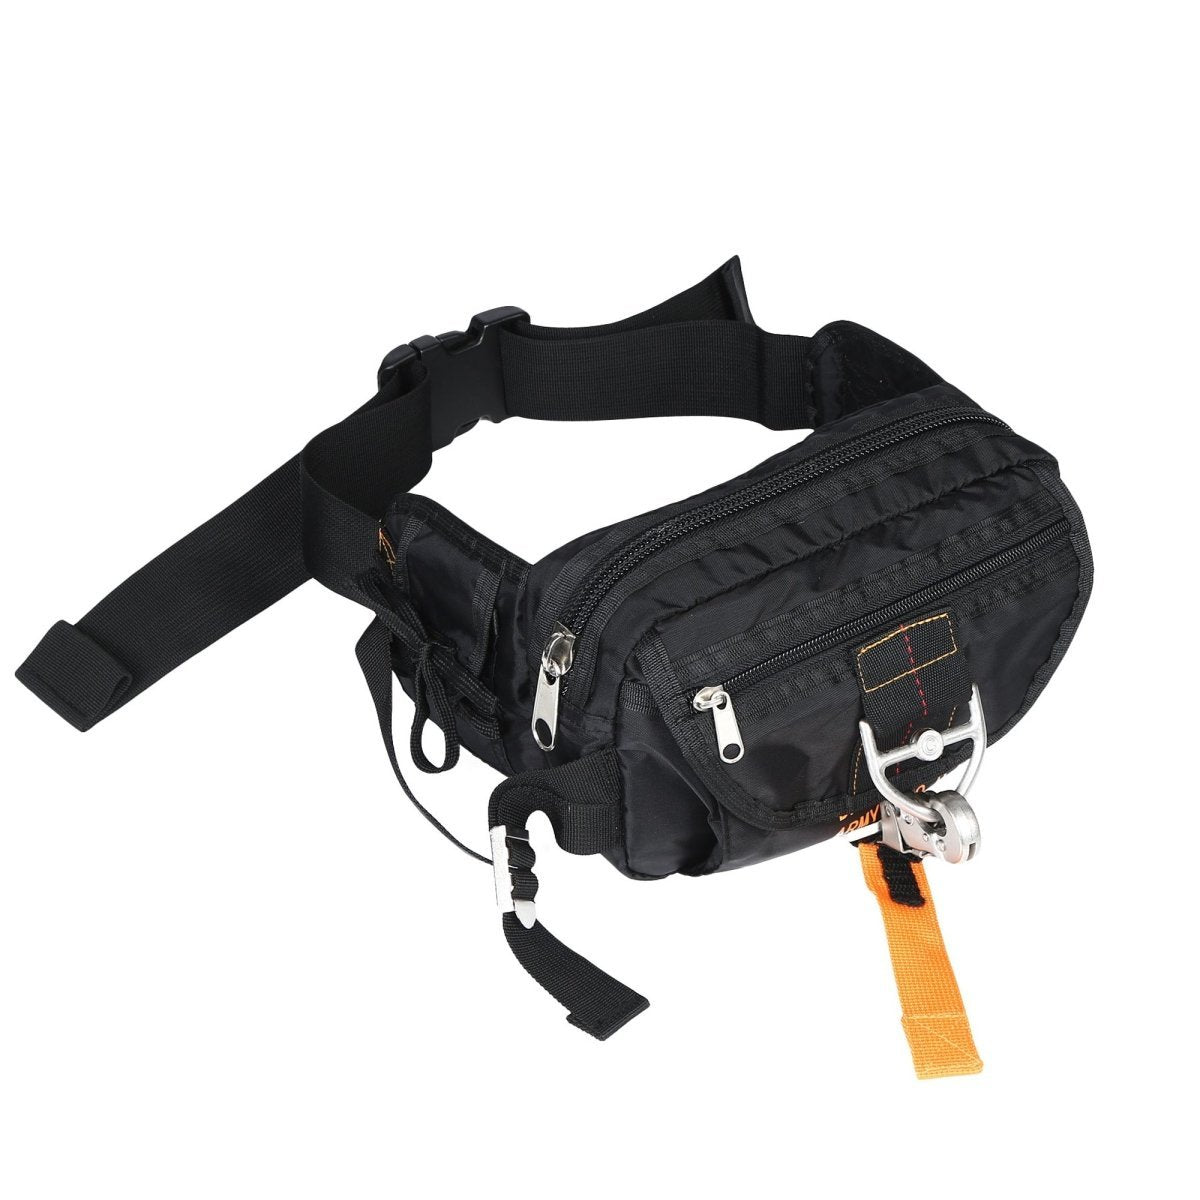 Military Grade Parachute Fanny Pack, Bunker 27